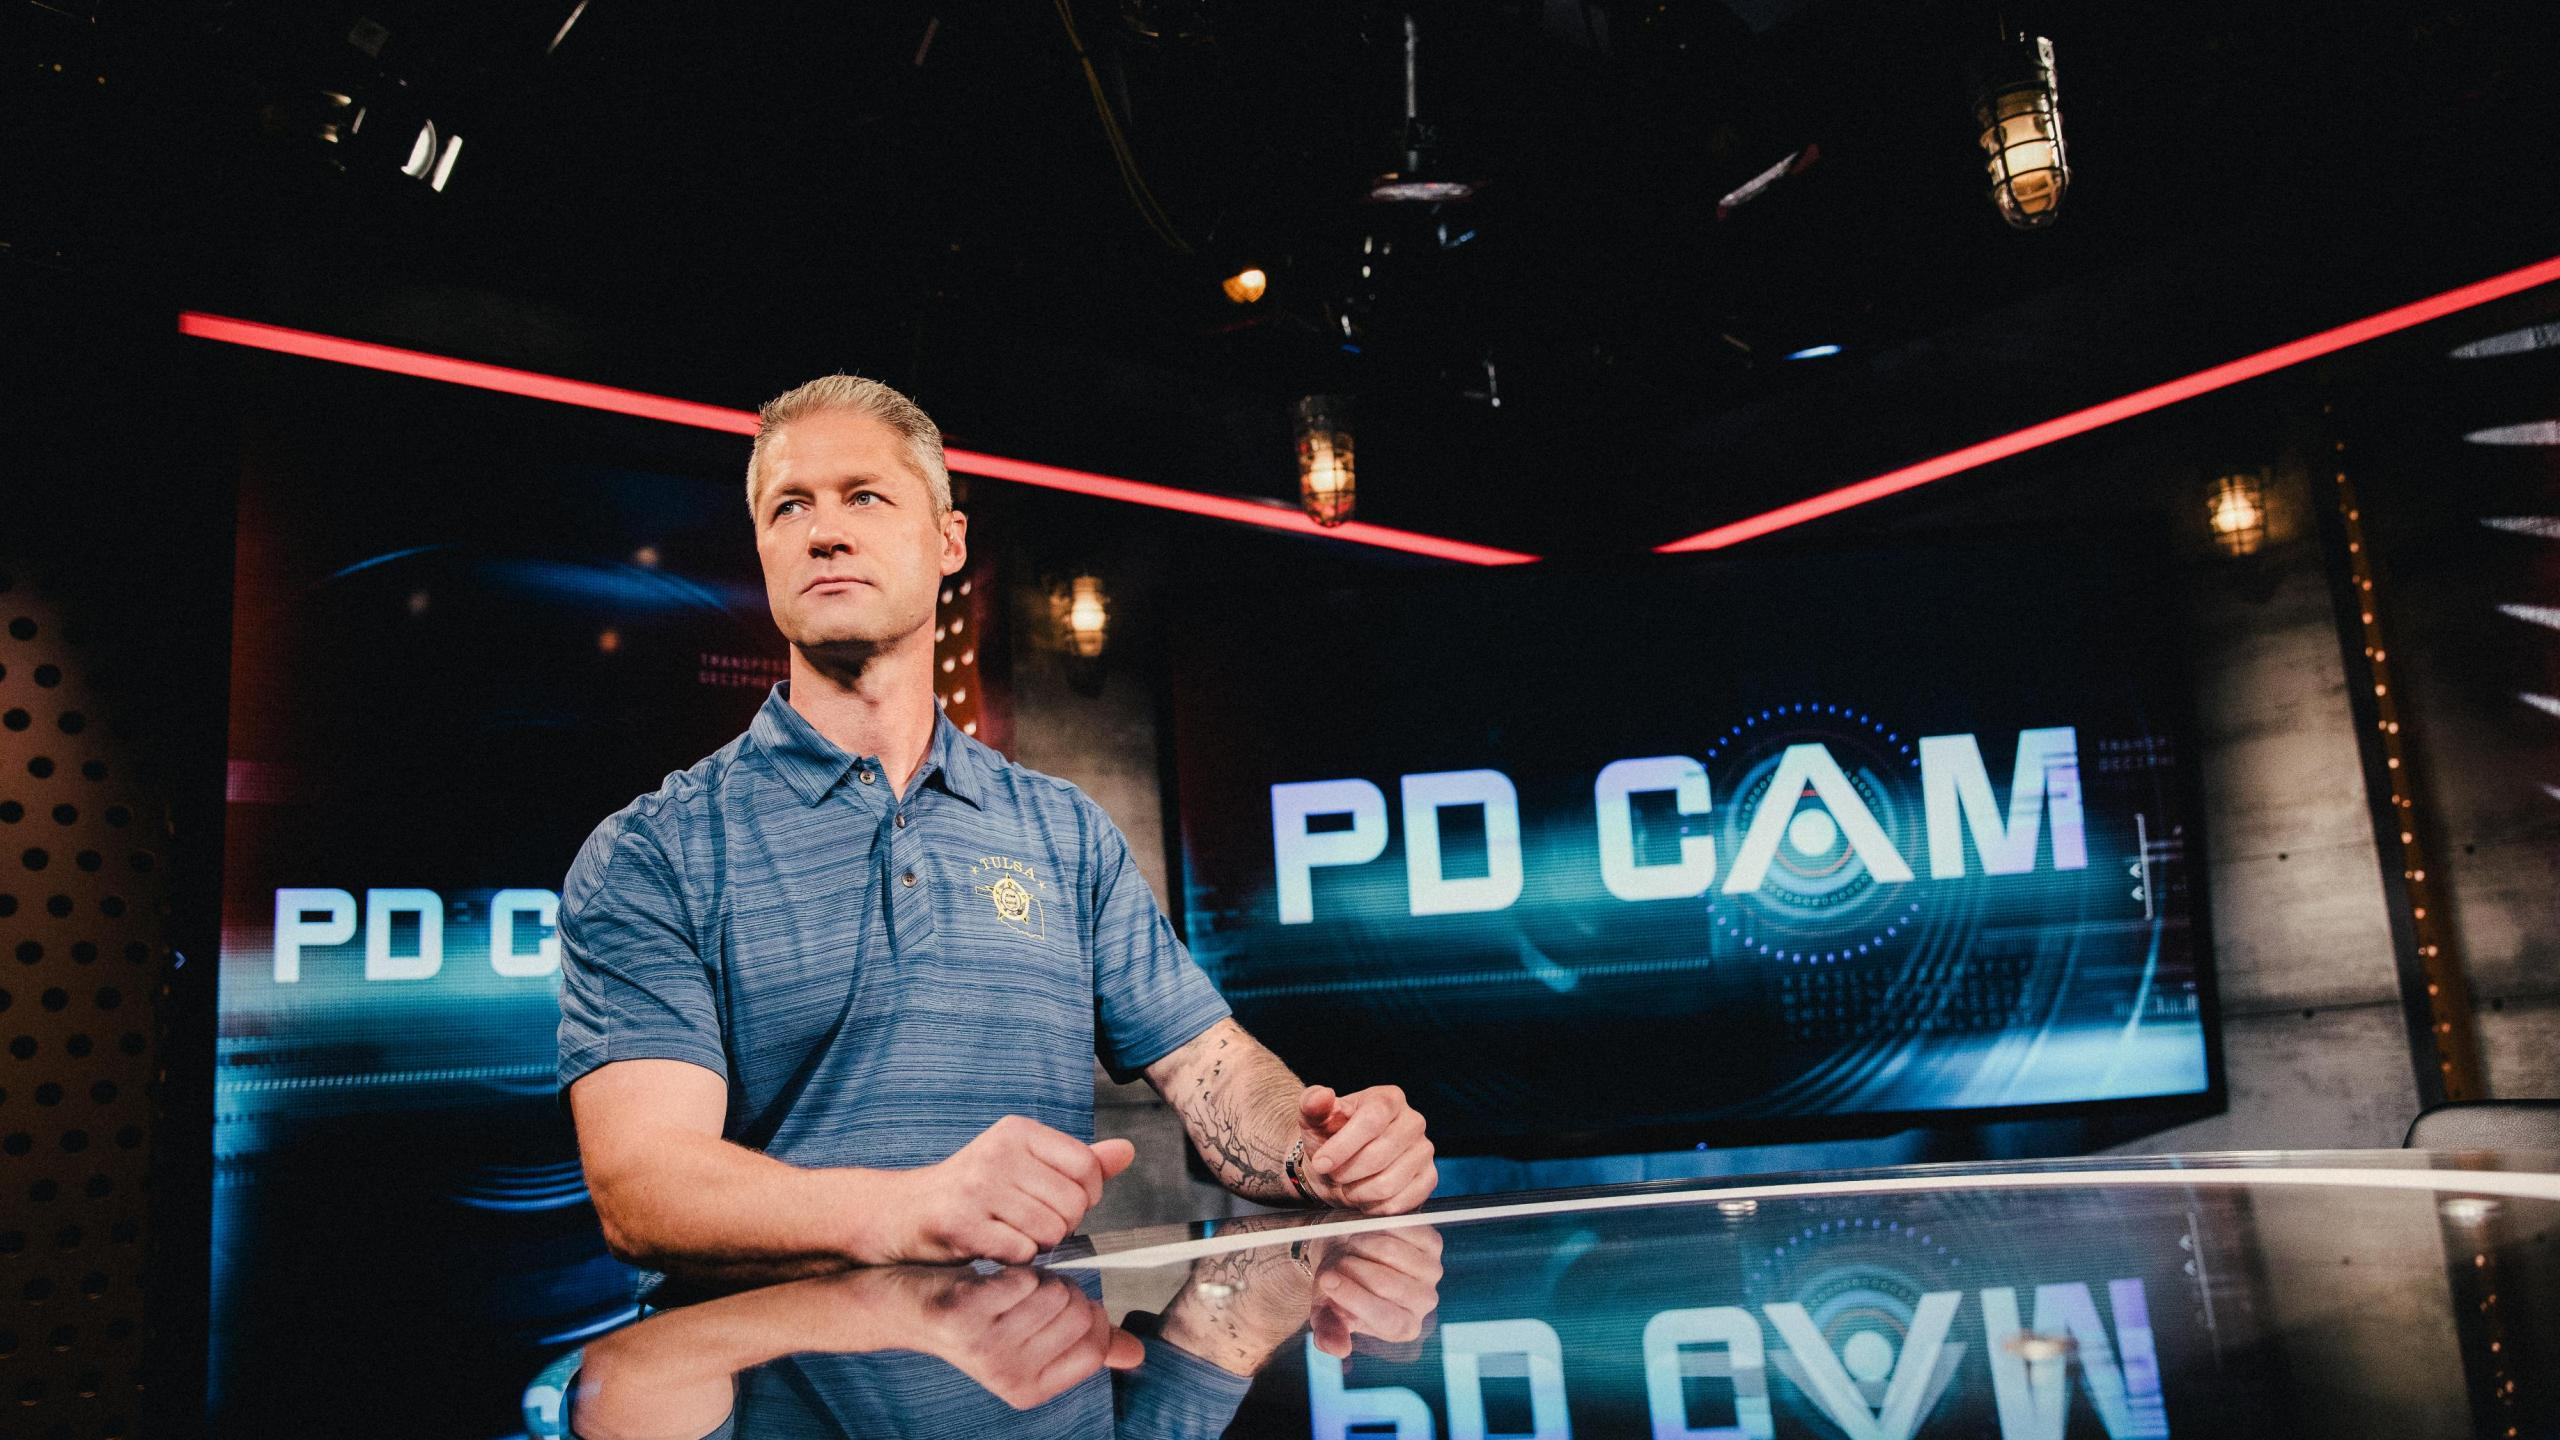 """Sgt. Sean """"Sticks"""" Larkin of the Tulsa Police Department hosts 'Live PD Presents: PD Cam.' A&E has canceled the police reality series as the debate over the role of police in the US intensifies. (Patrick T. Fallon/A&E)"""